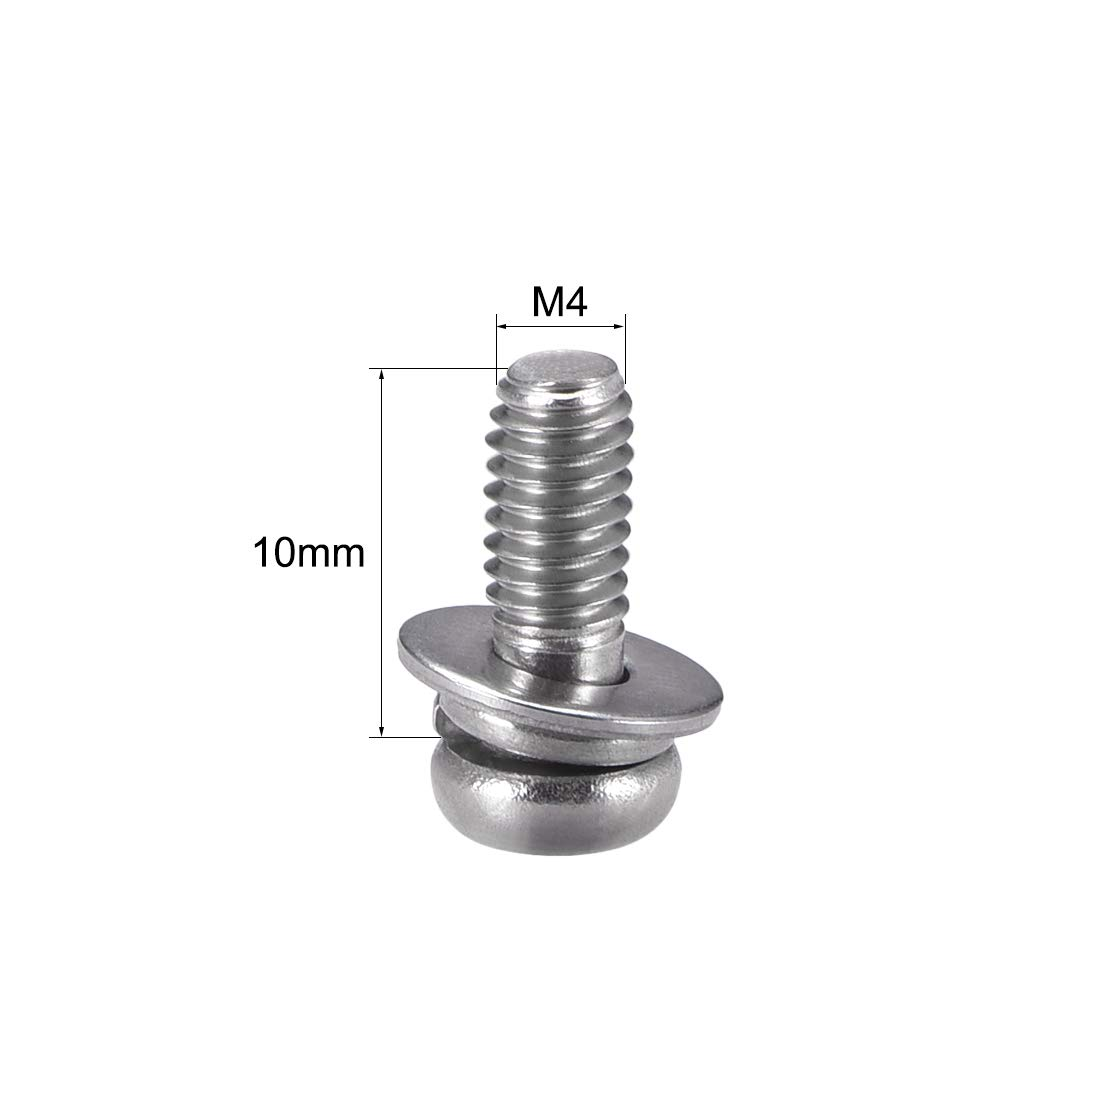 uxcell M4 x 10mm Stainless Steel Phillips Pan Head Machine Screws Bolts Combine with Spring Washer and Plain Washers 10pcs